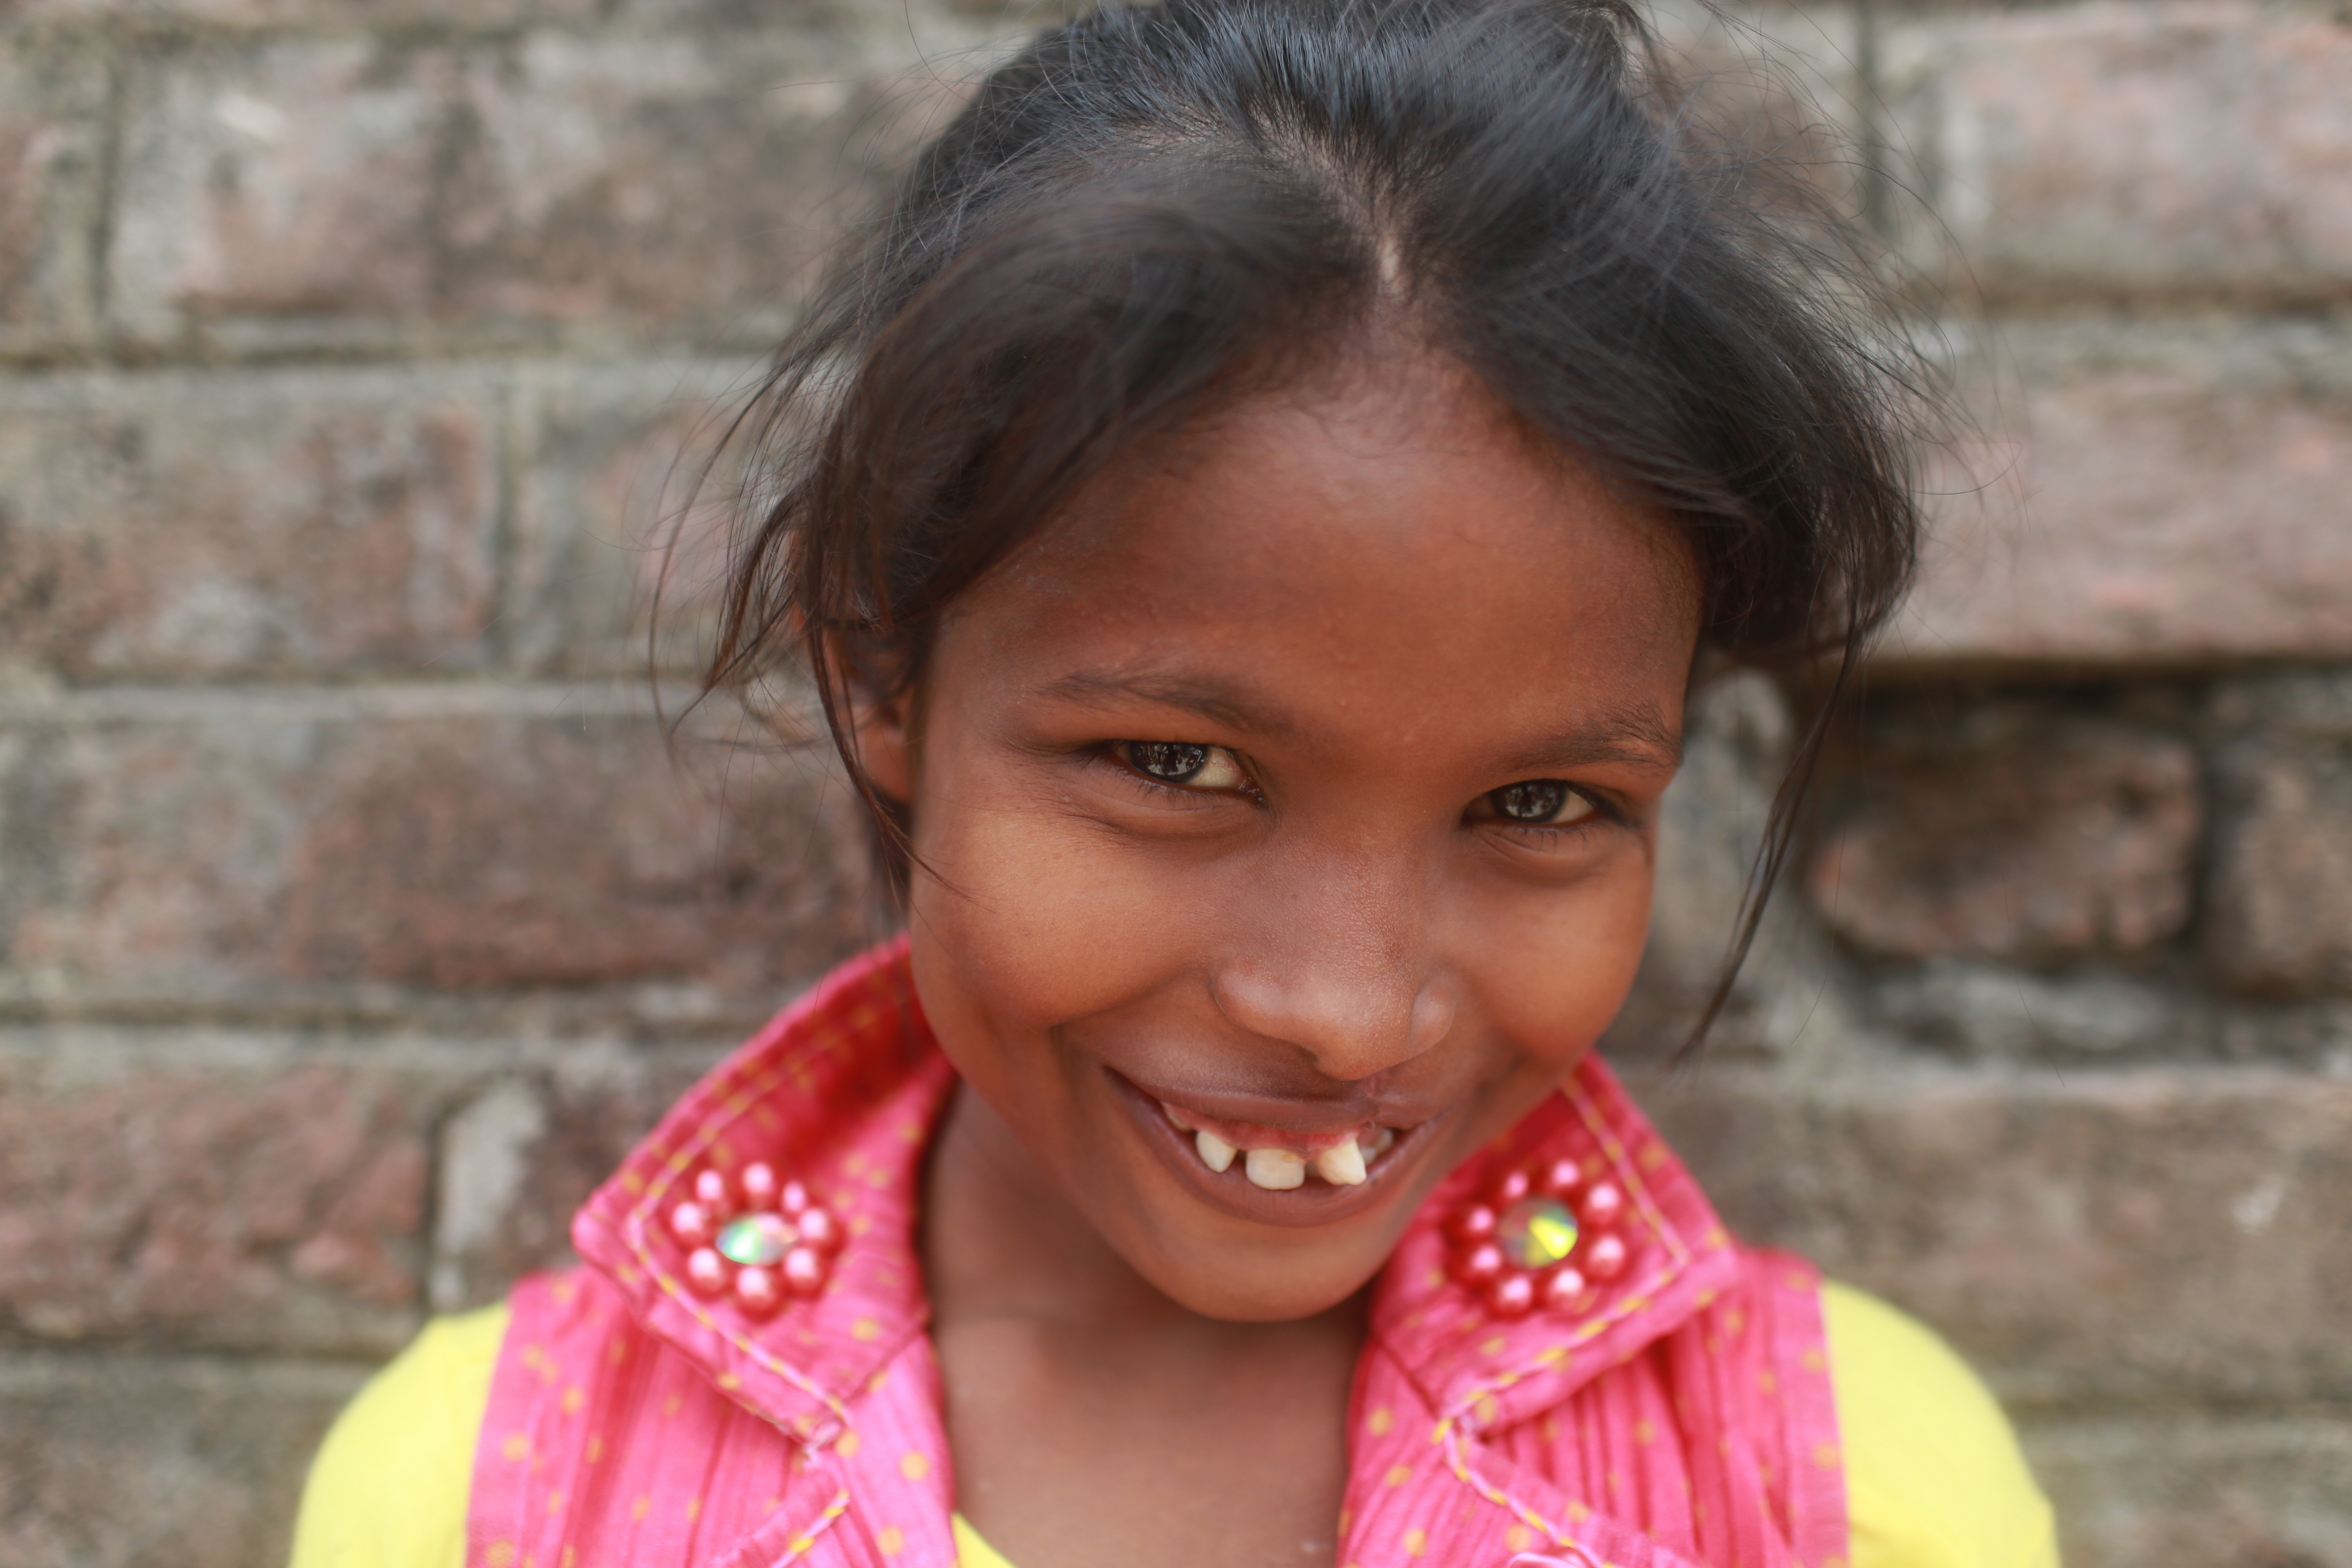 One VR production by nonprofit Smile Train follows the journey of young Nisha (pictured) as she leaves her remote village for surgery and the exuberant joy she experiences post-operation upon her return.